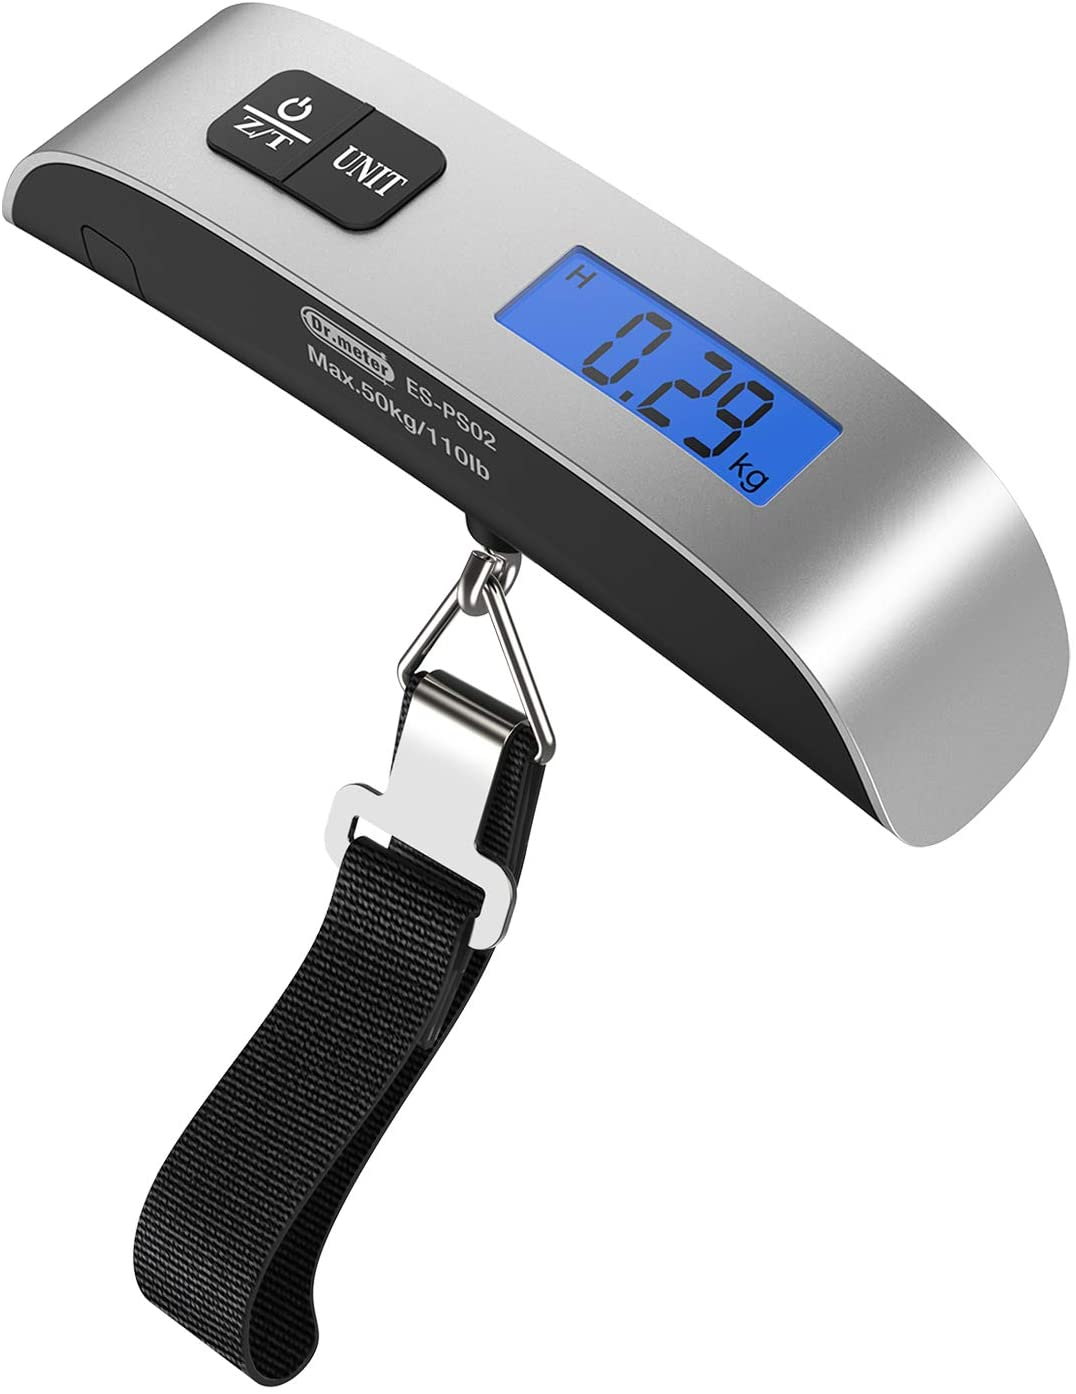 Dr. Meter Luggage Scale